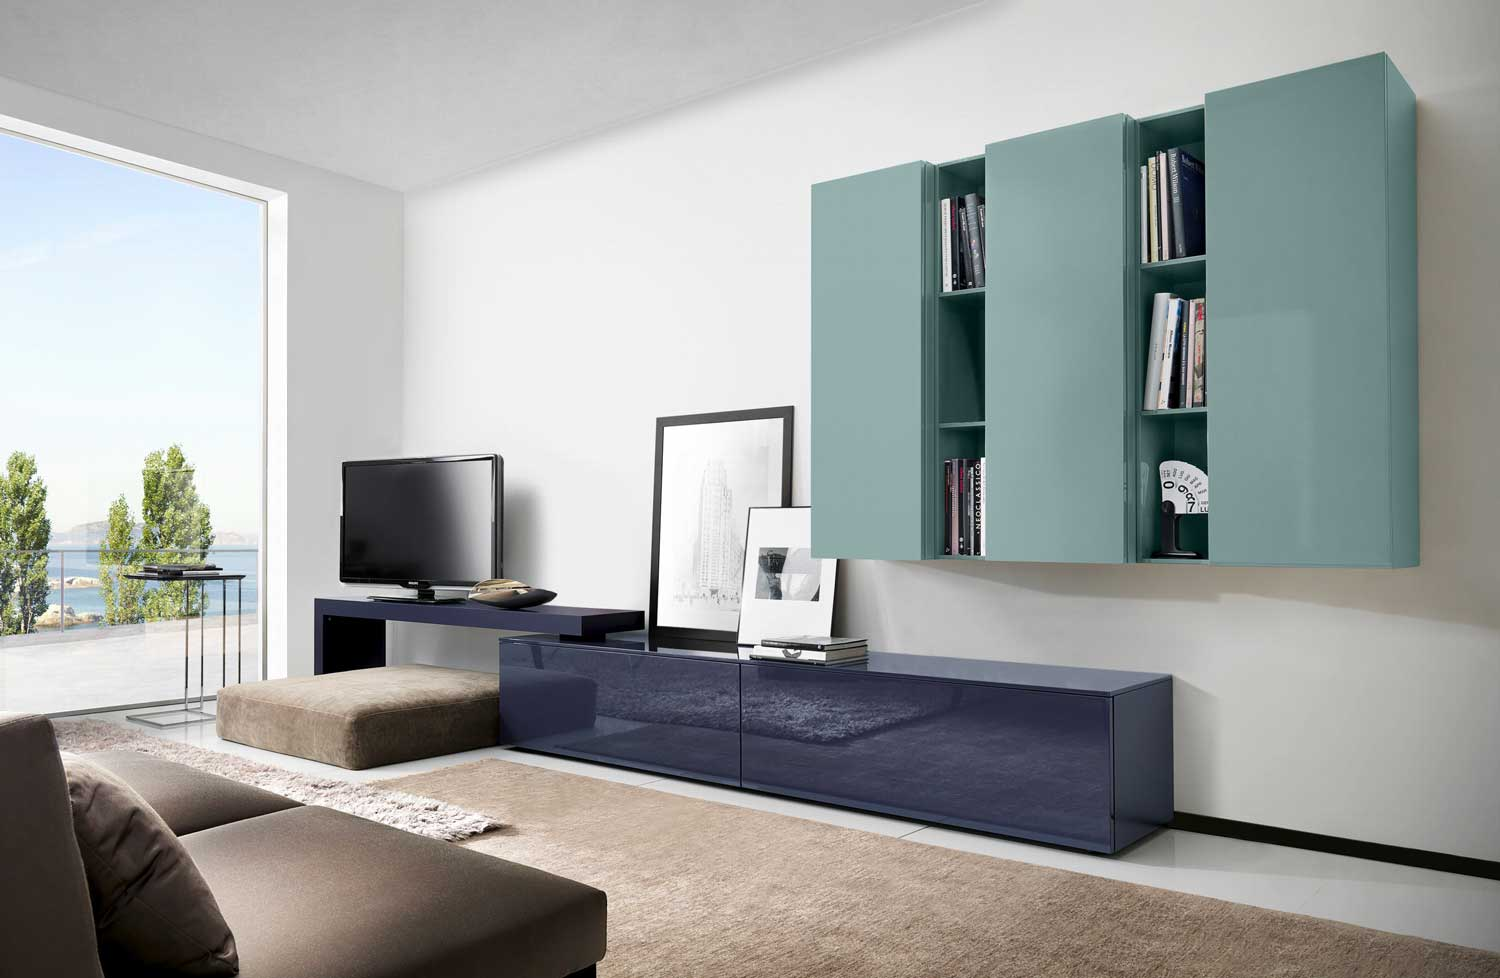 cerezo meubles decoration amenagement interieur design ForAmenagement Interieur Design Contemporain